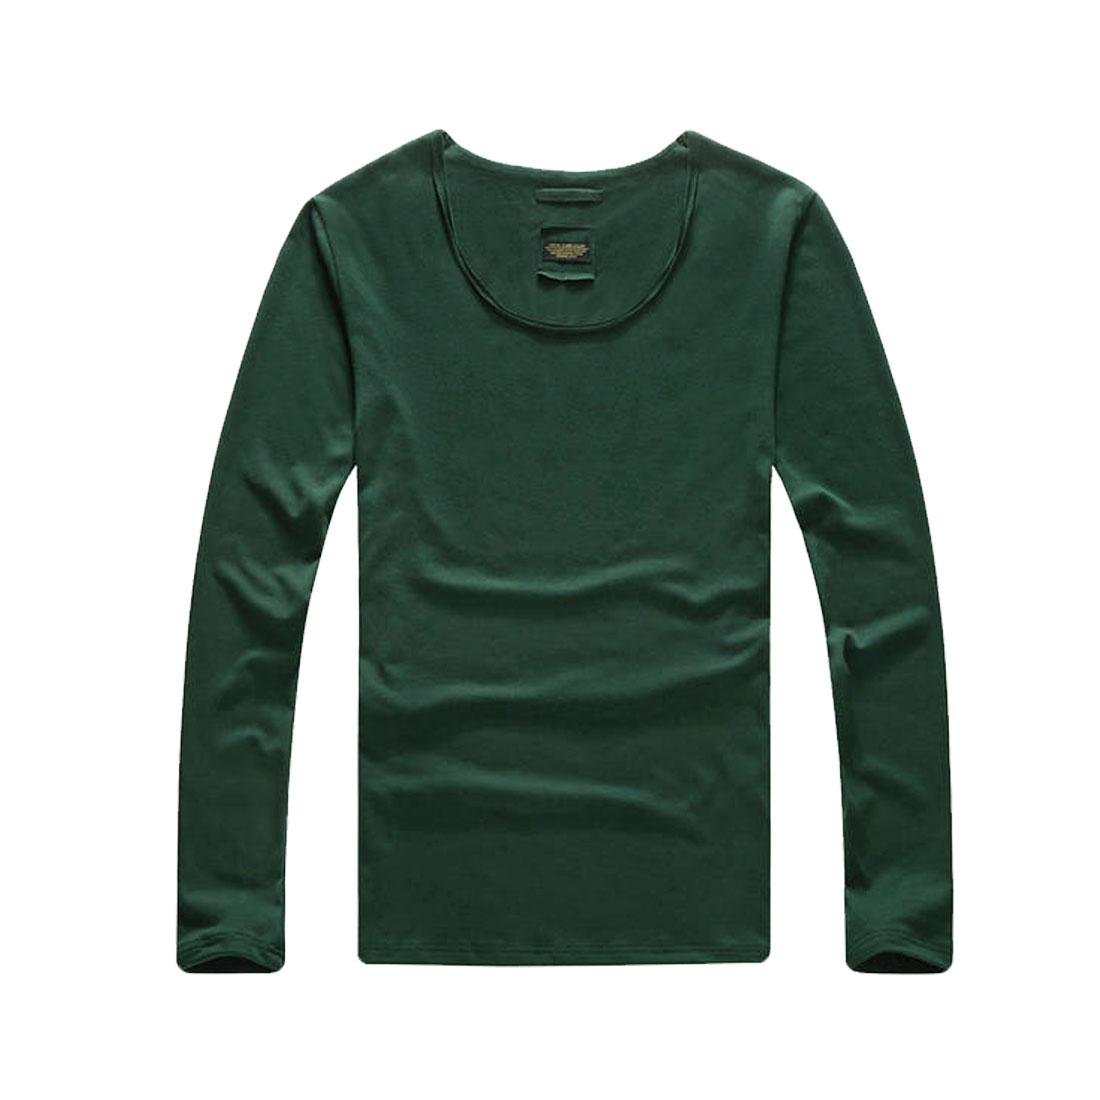 Mens Dark Green Fashion Simple Style Long Sleeve Pullover Fit Autumn Top Shirt M